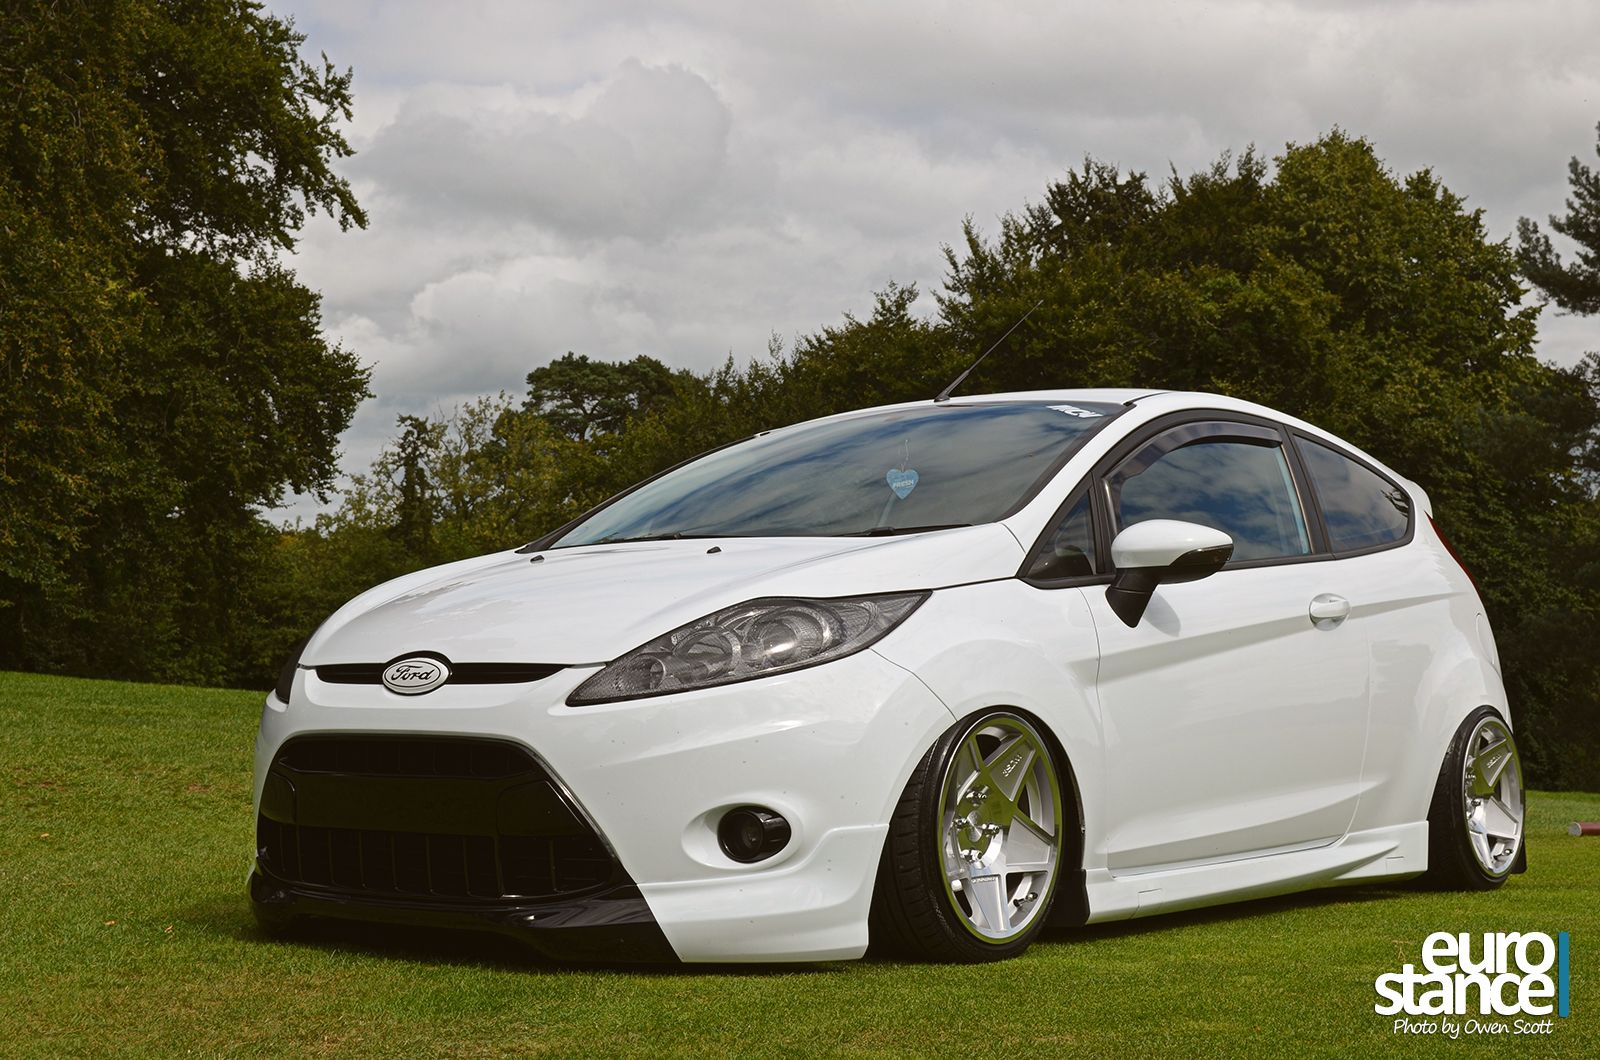 stephen chambers mk7 ford fiesta on hydraulics stance ford street stance pinterest. Black Bedroom Furniture Sets. Home Design Ideas